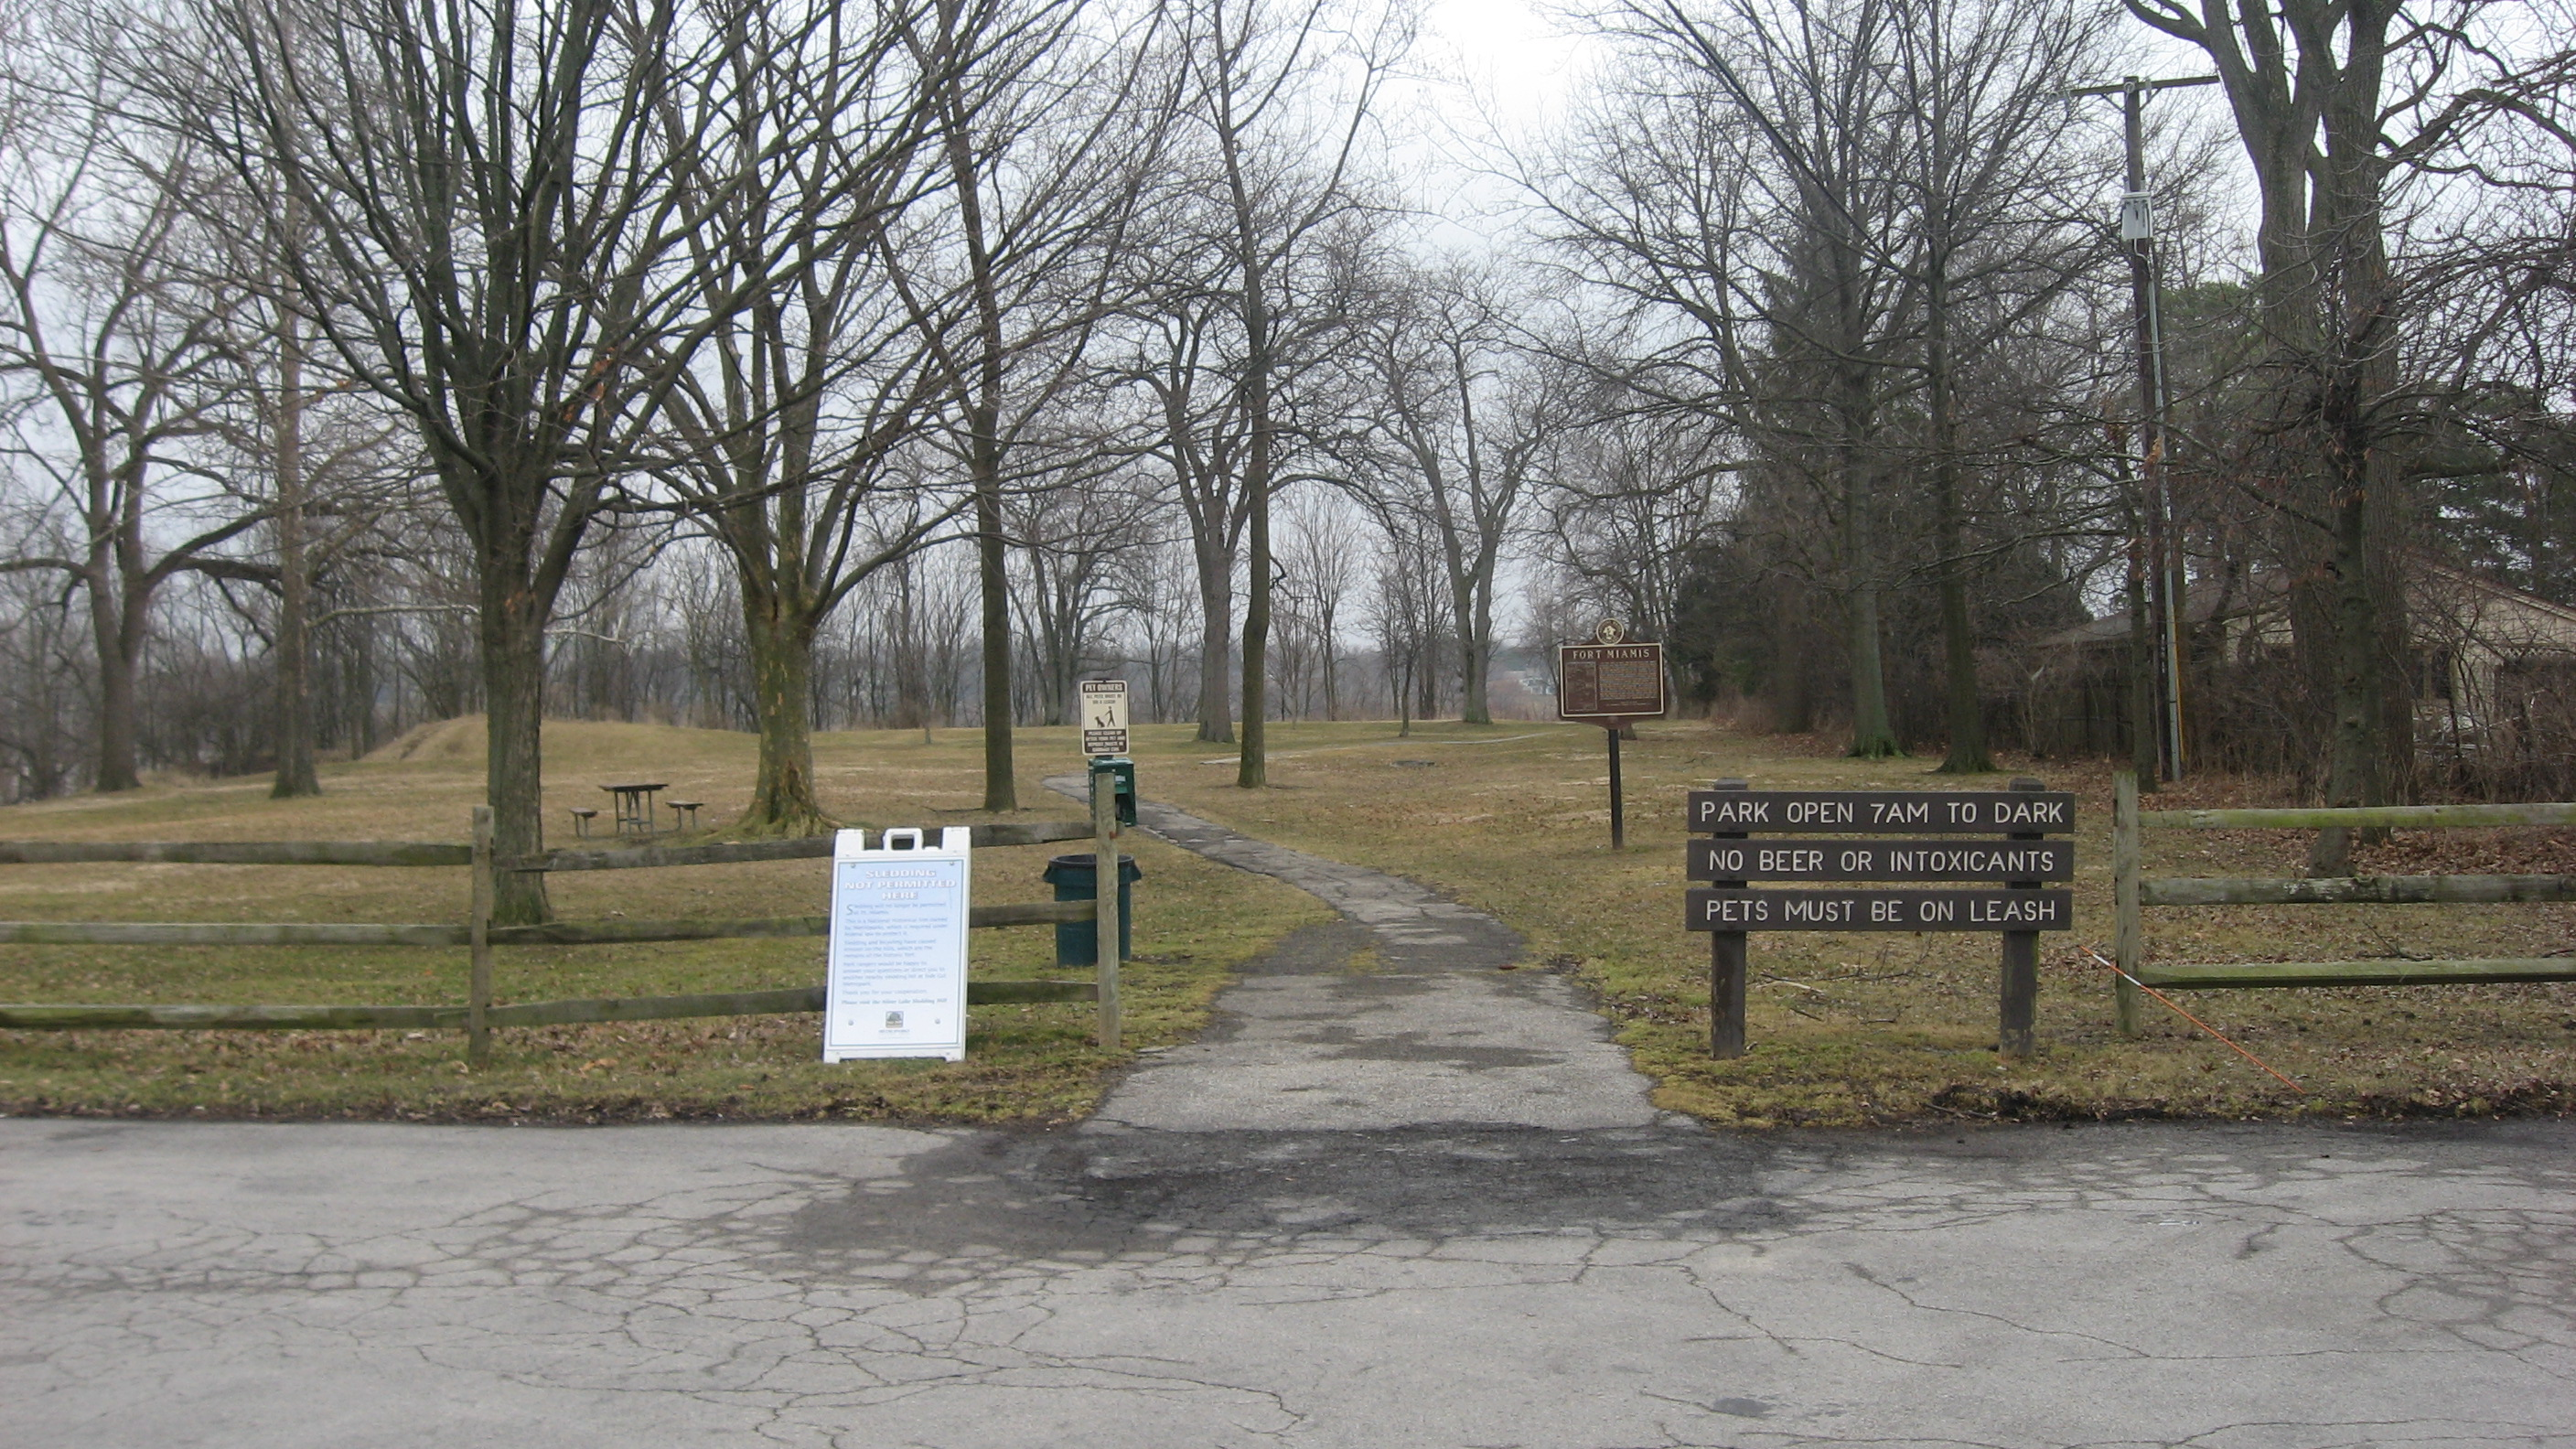 A wide shot of the marker in the park.